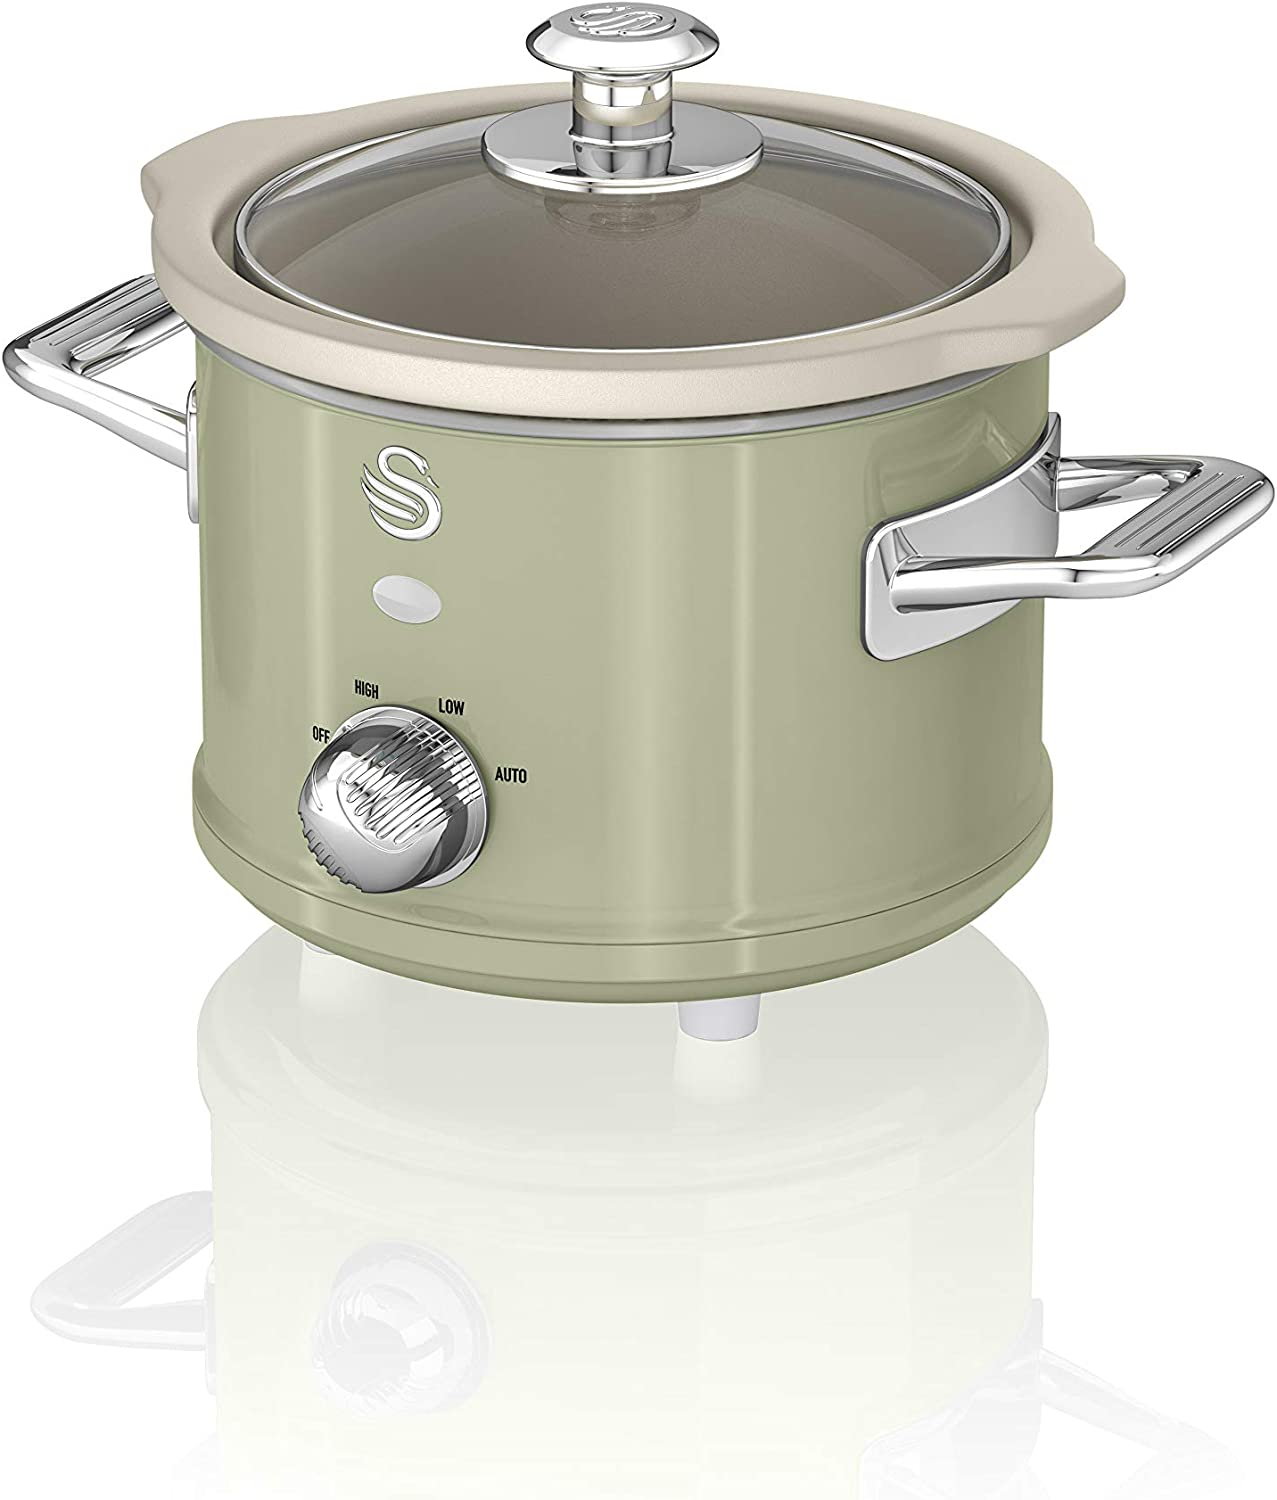 Swan SF17011GN 1.5 Litre Retro Slow Cooker with Removable Ceramic Pot, 3 Heat Settings, 120w